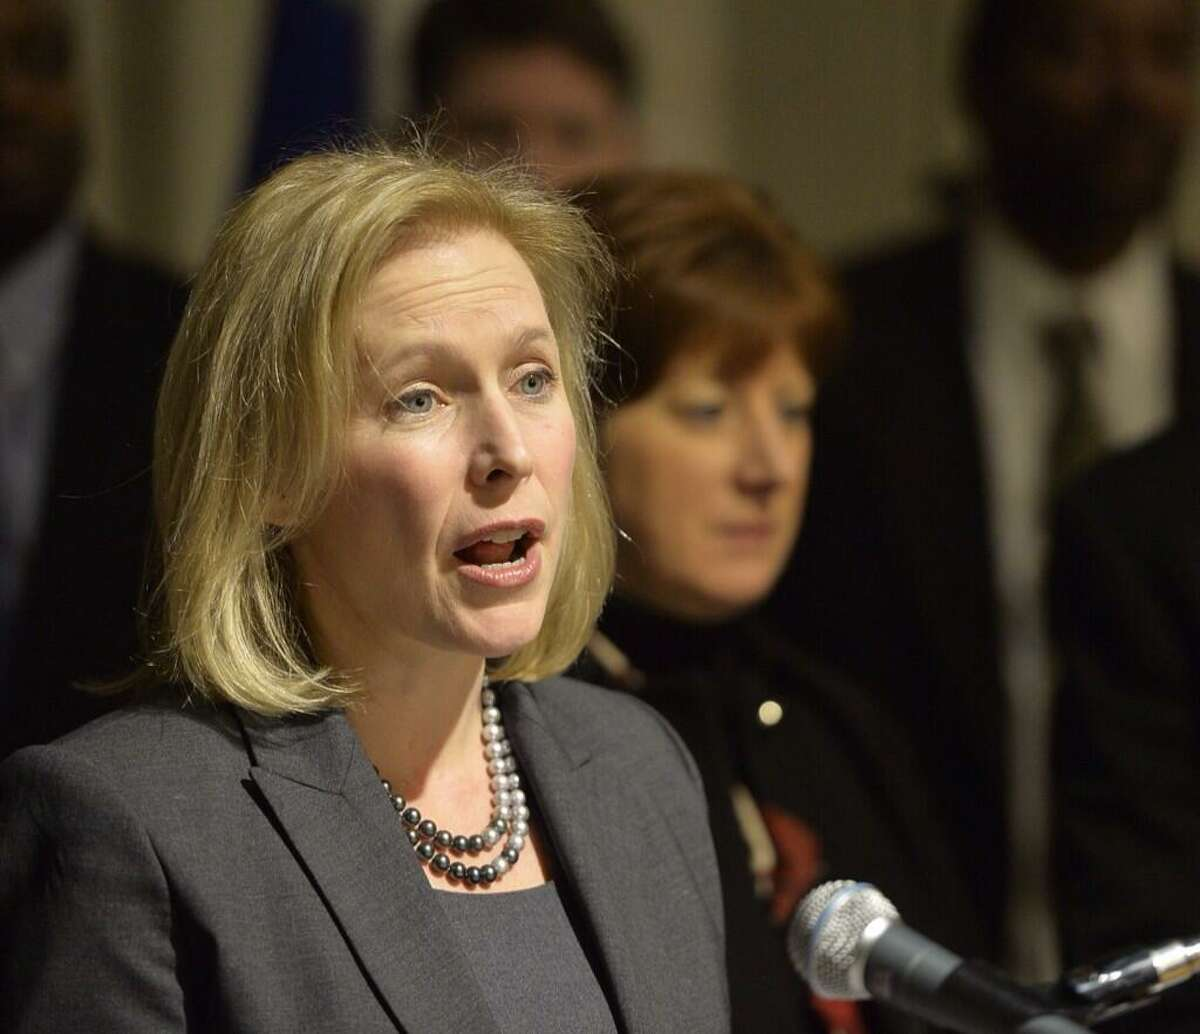 Sen. Kirsten Gillibrand is joined by Albany Mayor Kathy Sheehan in announcing federal legislation to create paid family leave Friday morning, Jan. 10. 2014, at City Hall in Albany, N.Y. (Skip Dickstein/Times Union archive)